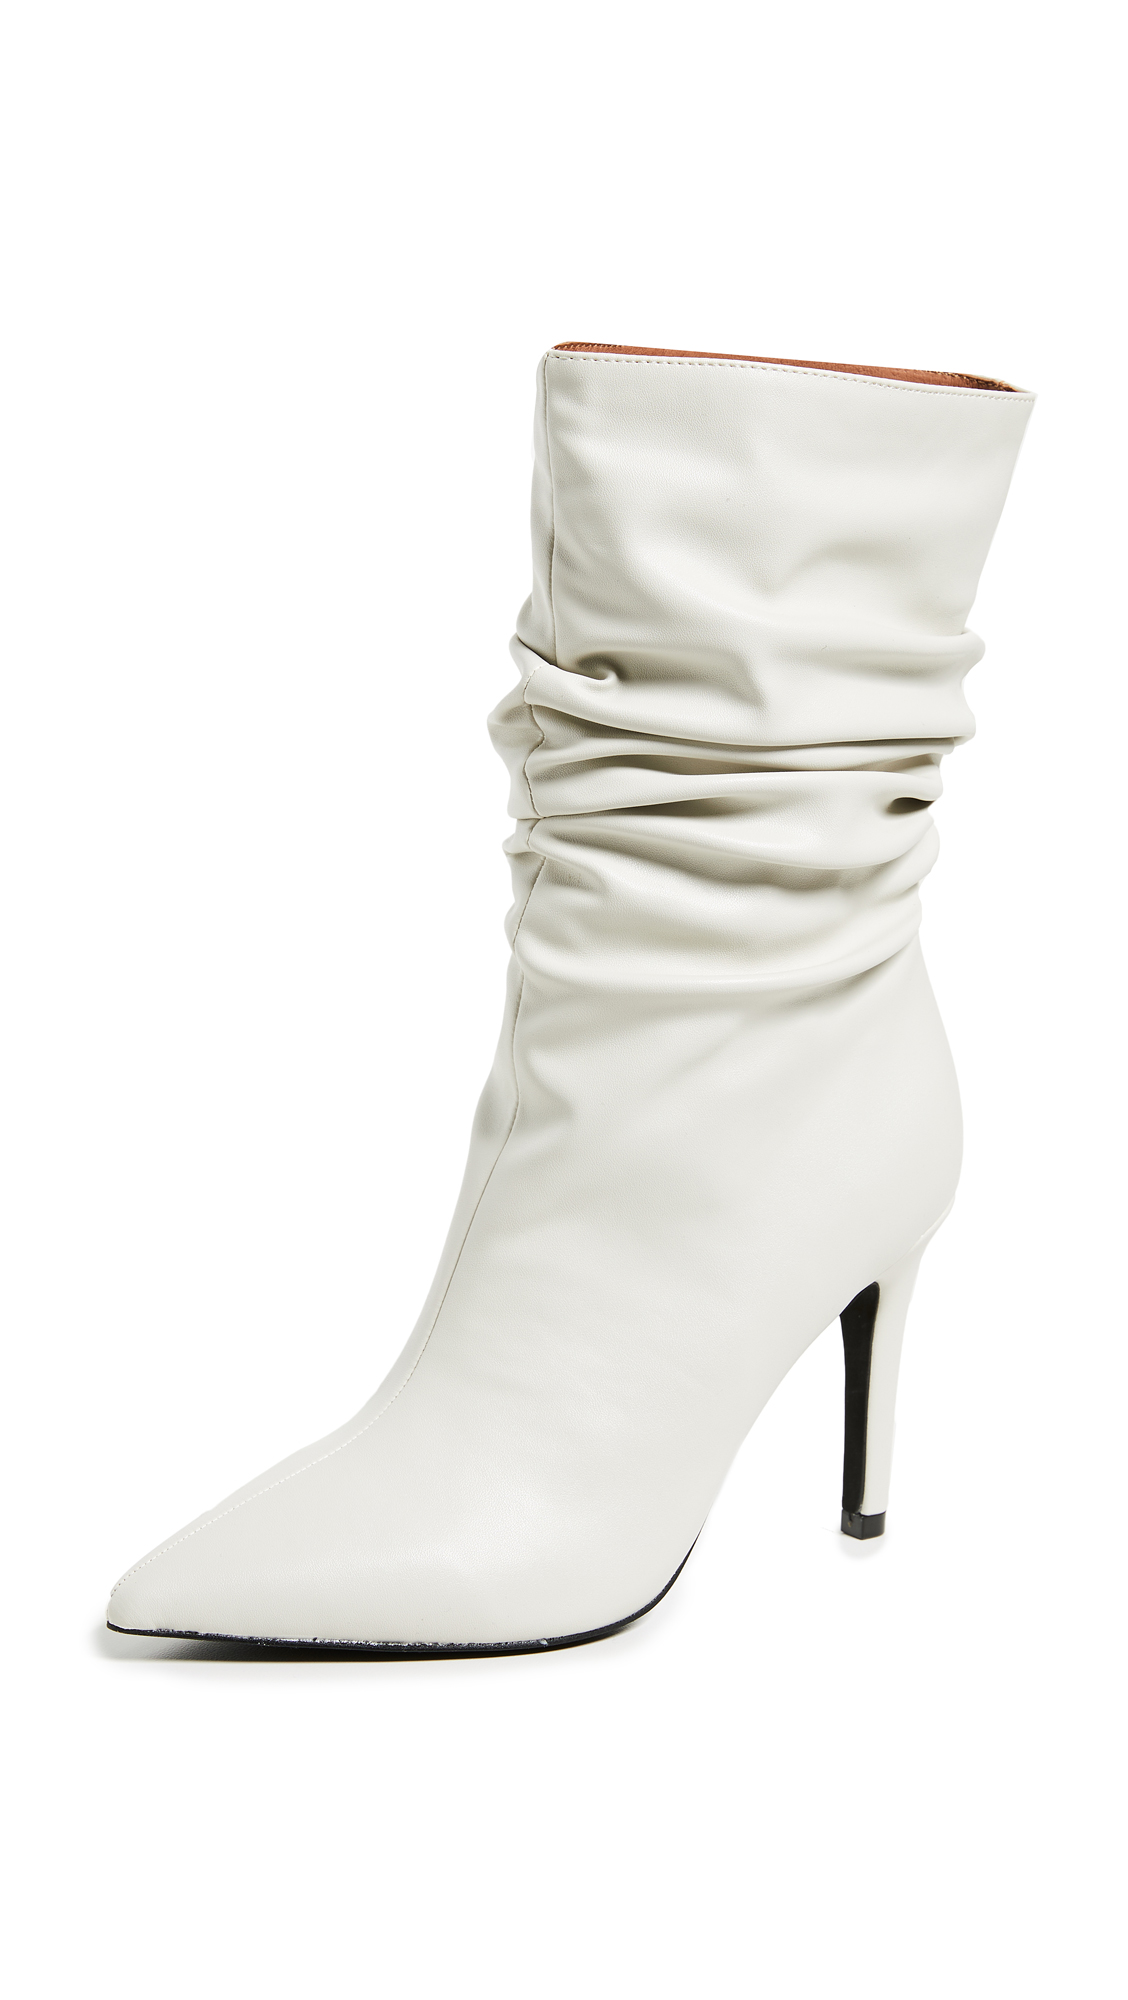 Jeffrey Campbell Guillot Point Toe Boots - Ivory